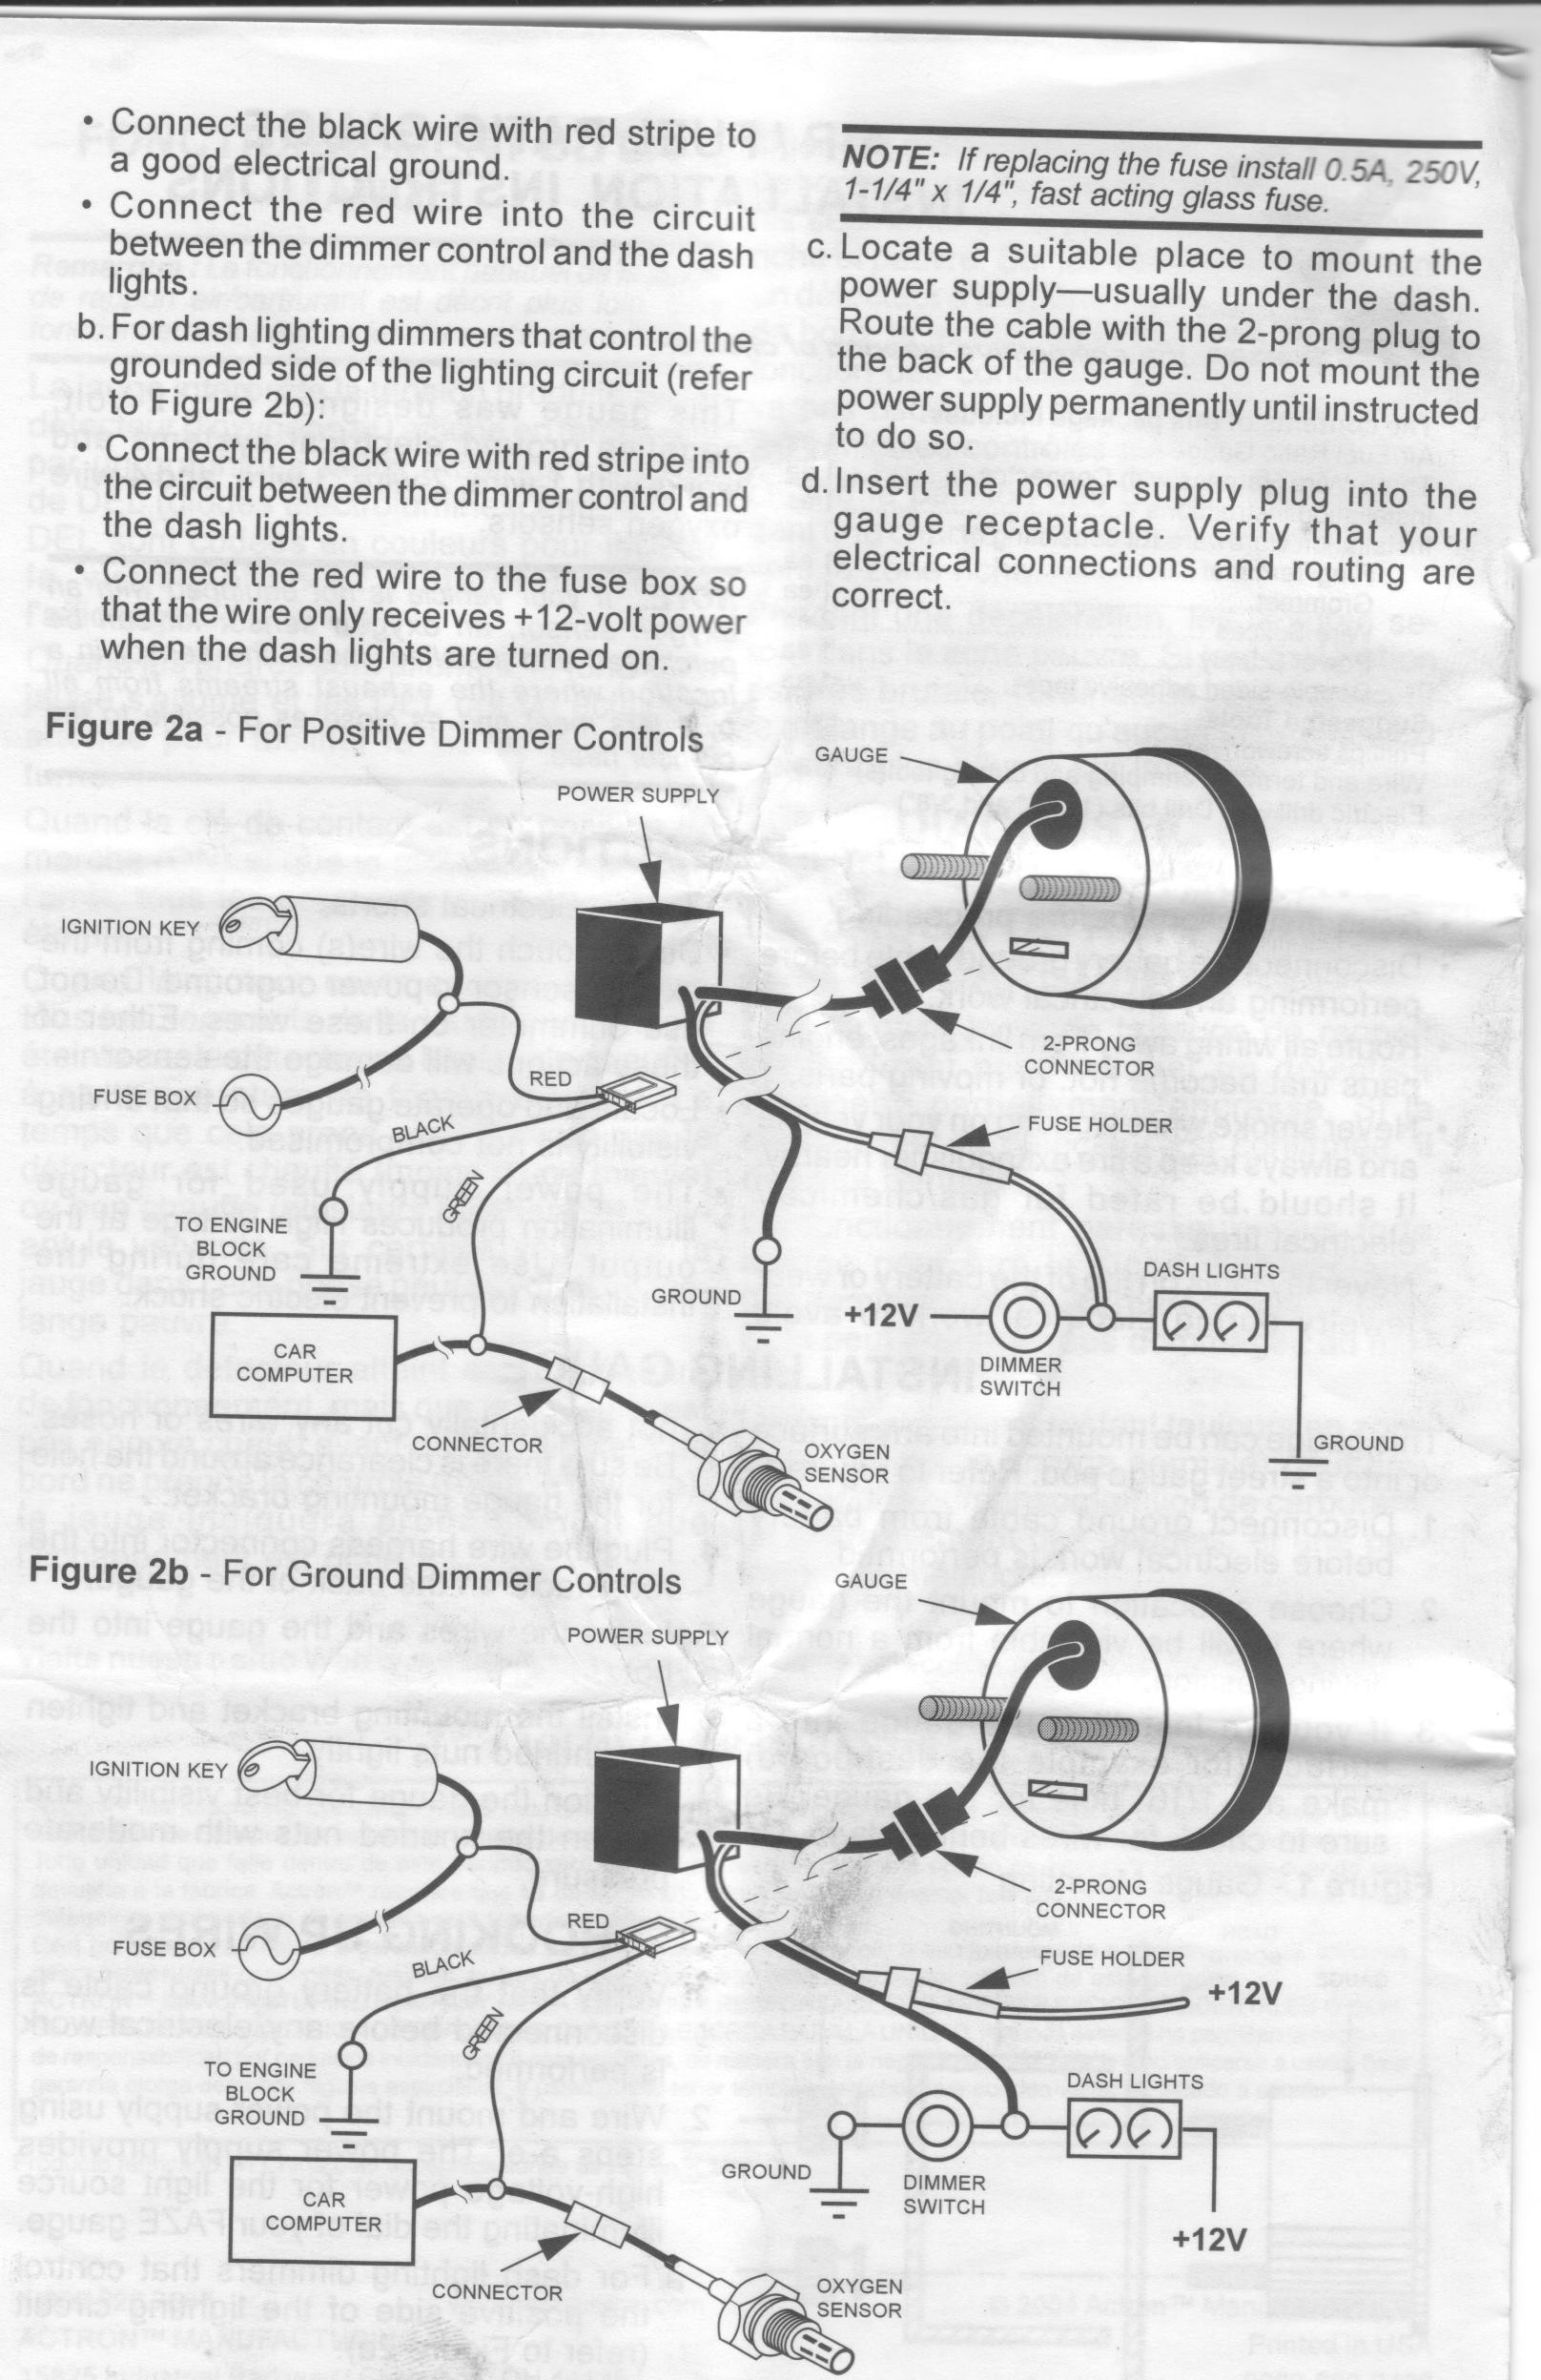 Autometer Wiring Diagram And Schematics Dolphin Diagrams Library Rh Evevo Co C2 Air Fuel Gauge